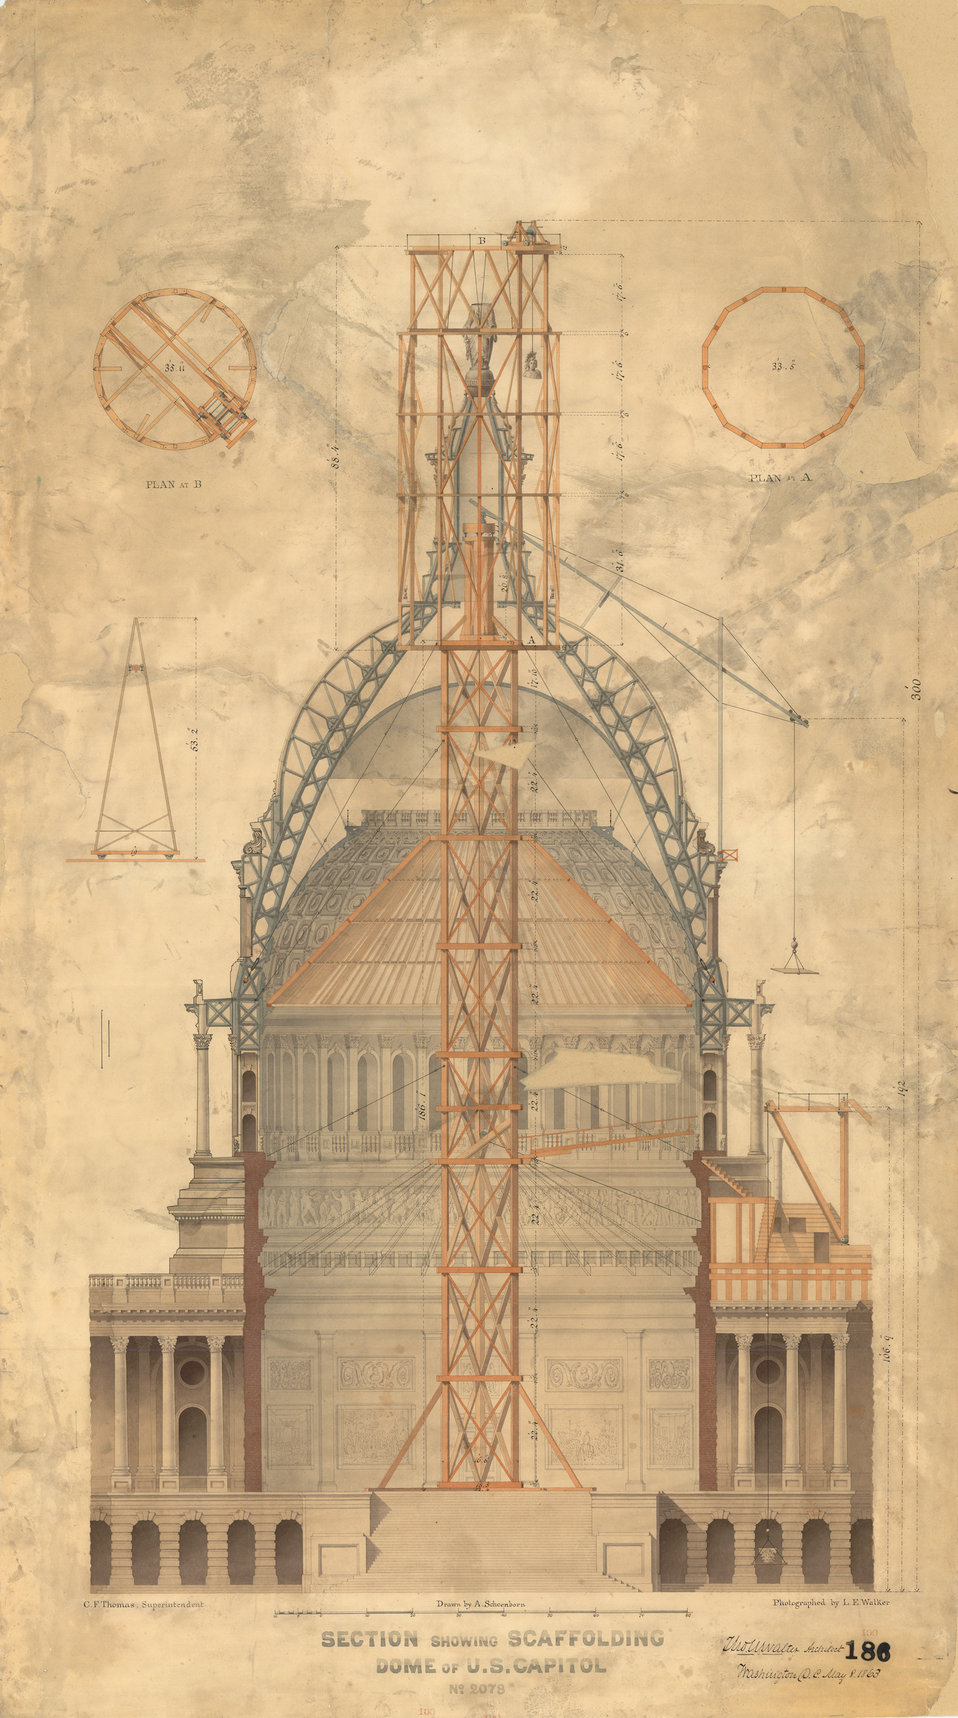 1863 Drawing of Scaffold for Statue of Freedom